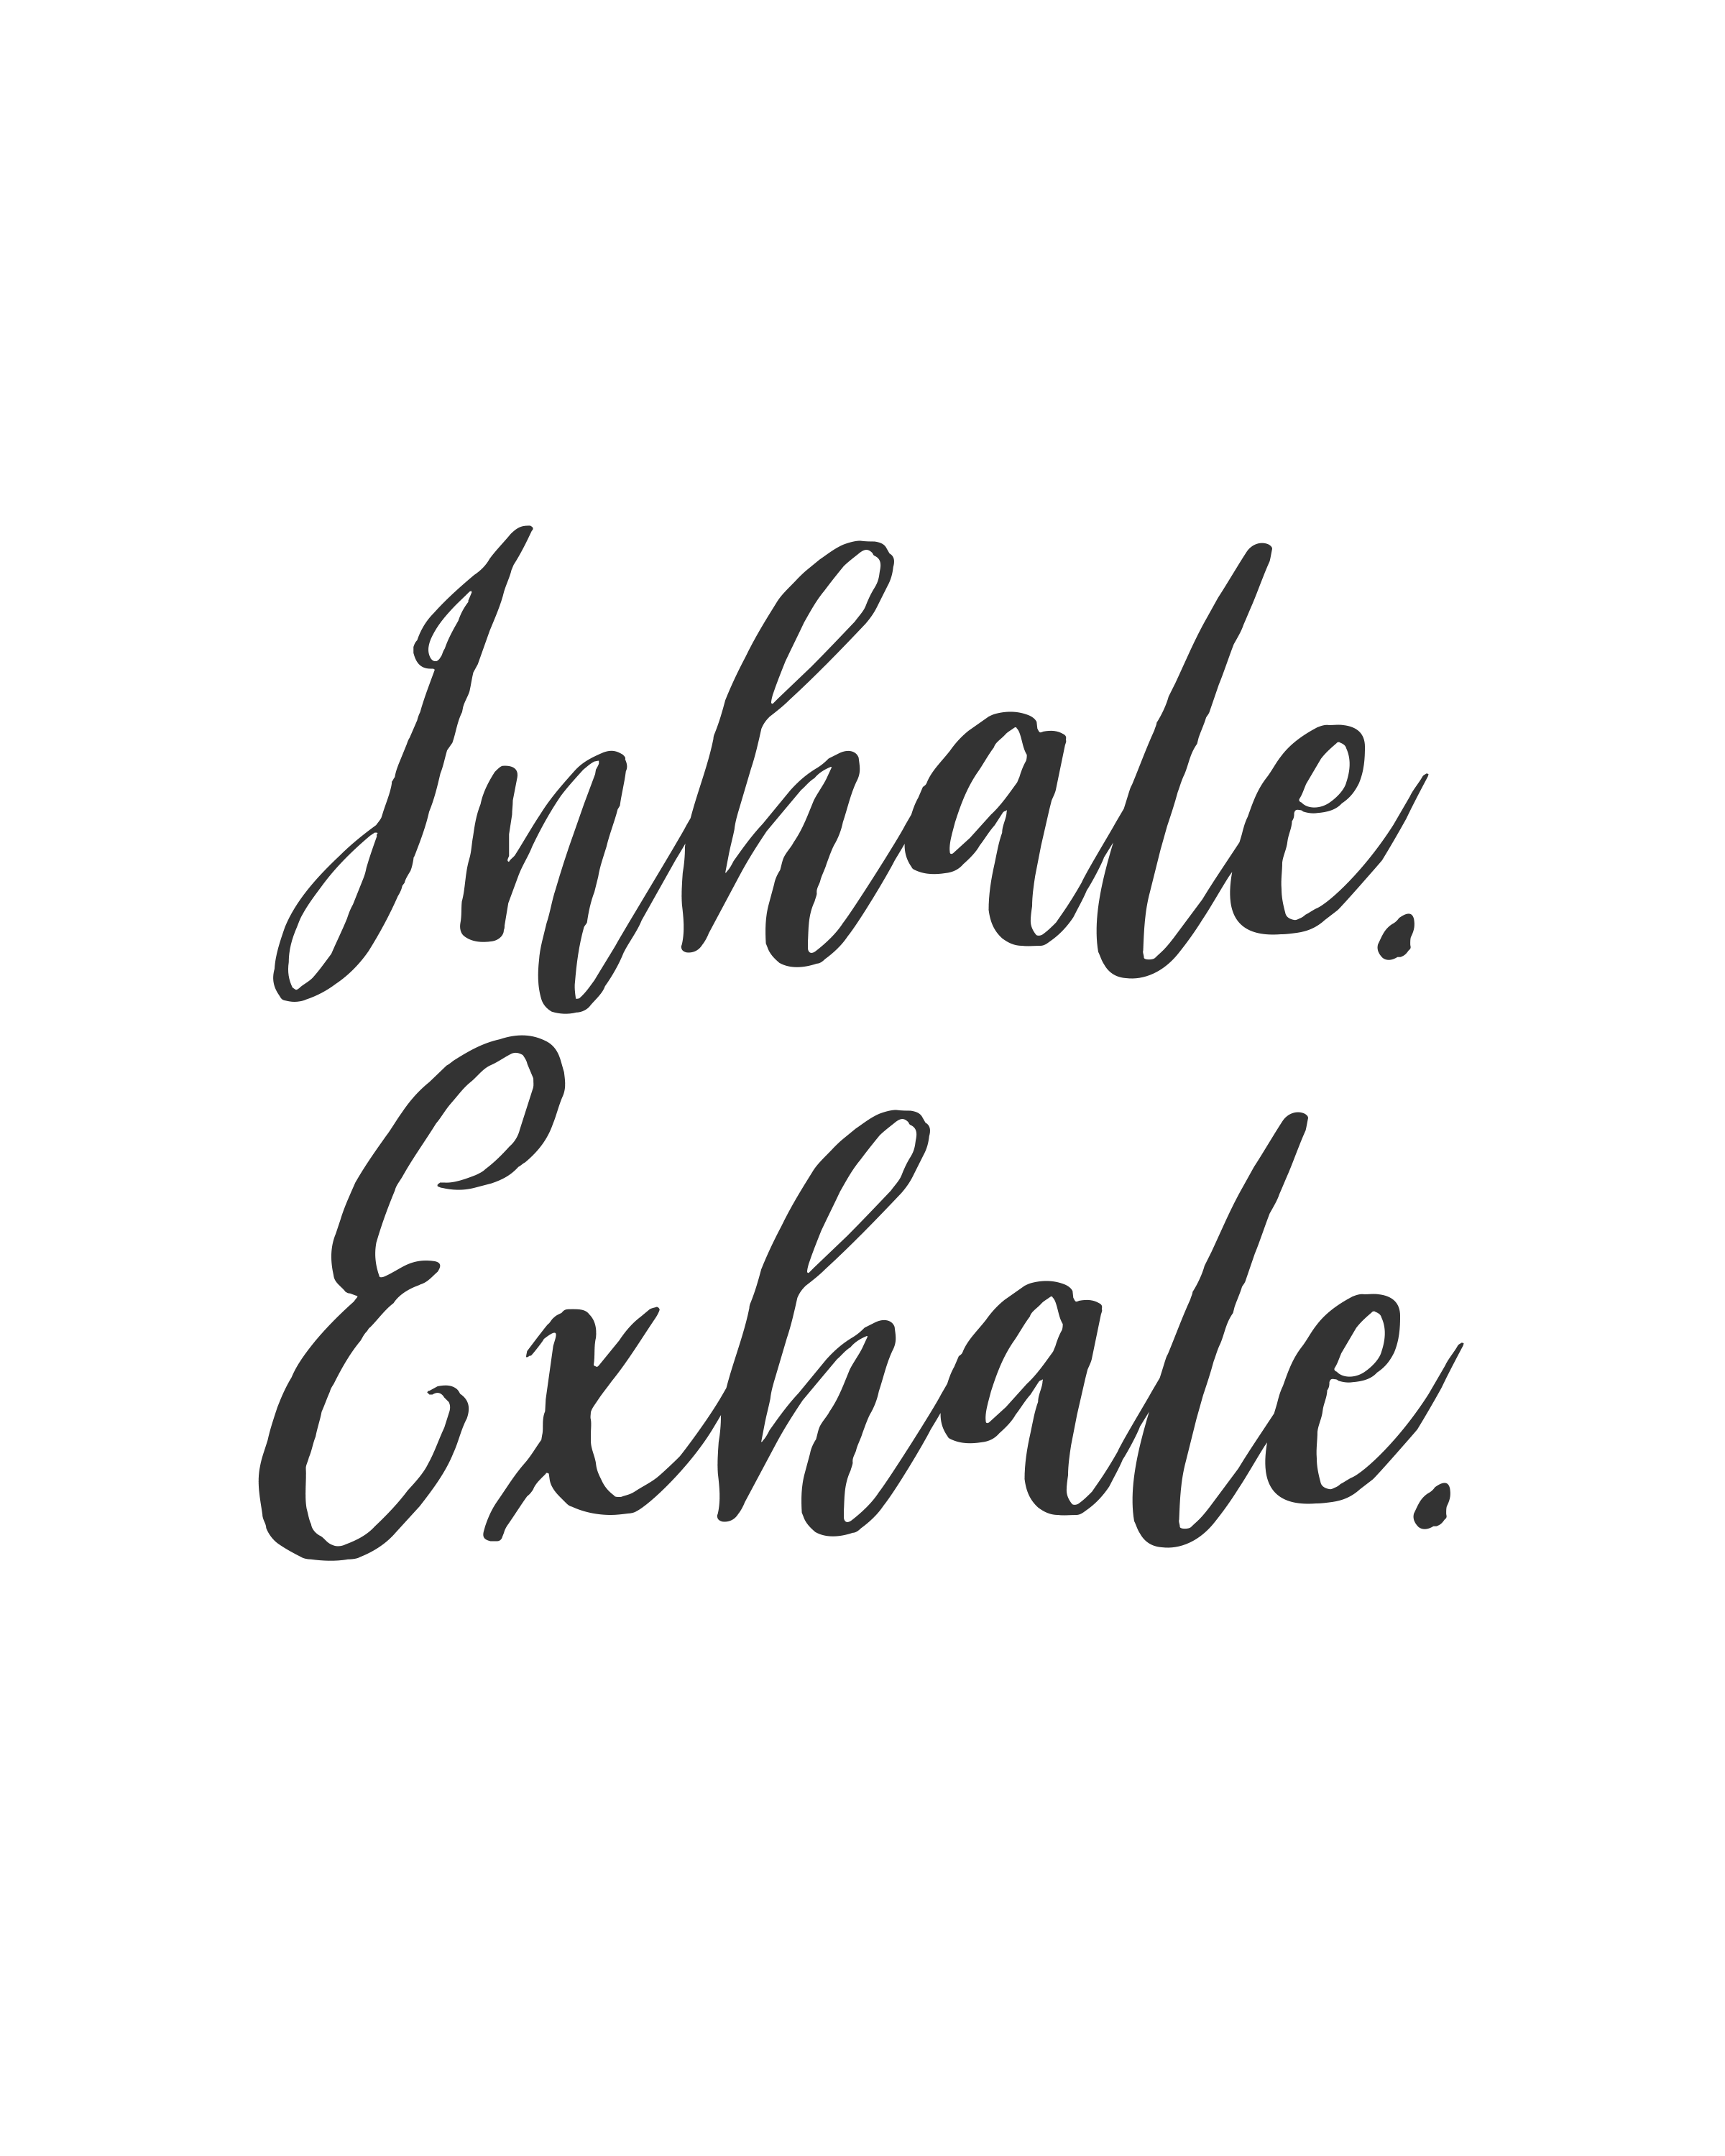 Motivational Inspirational Quotes: Inhale. Exhale. Poster